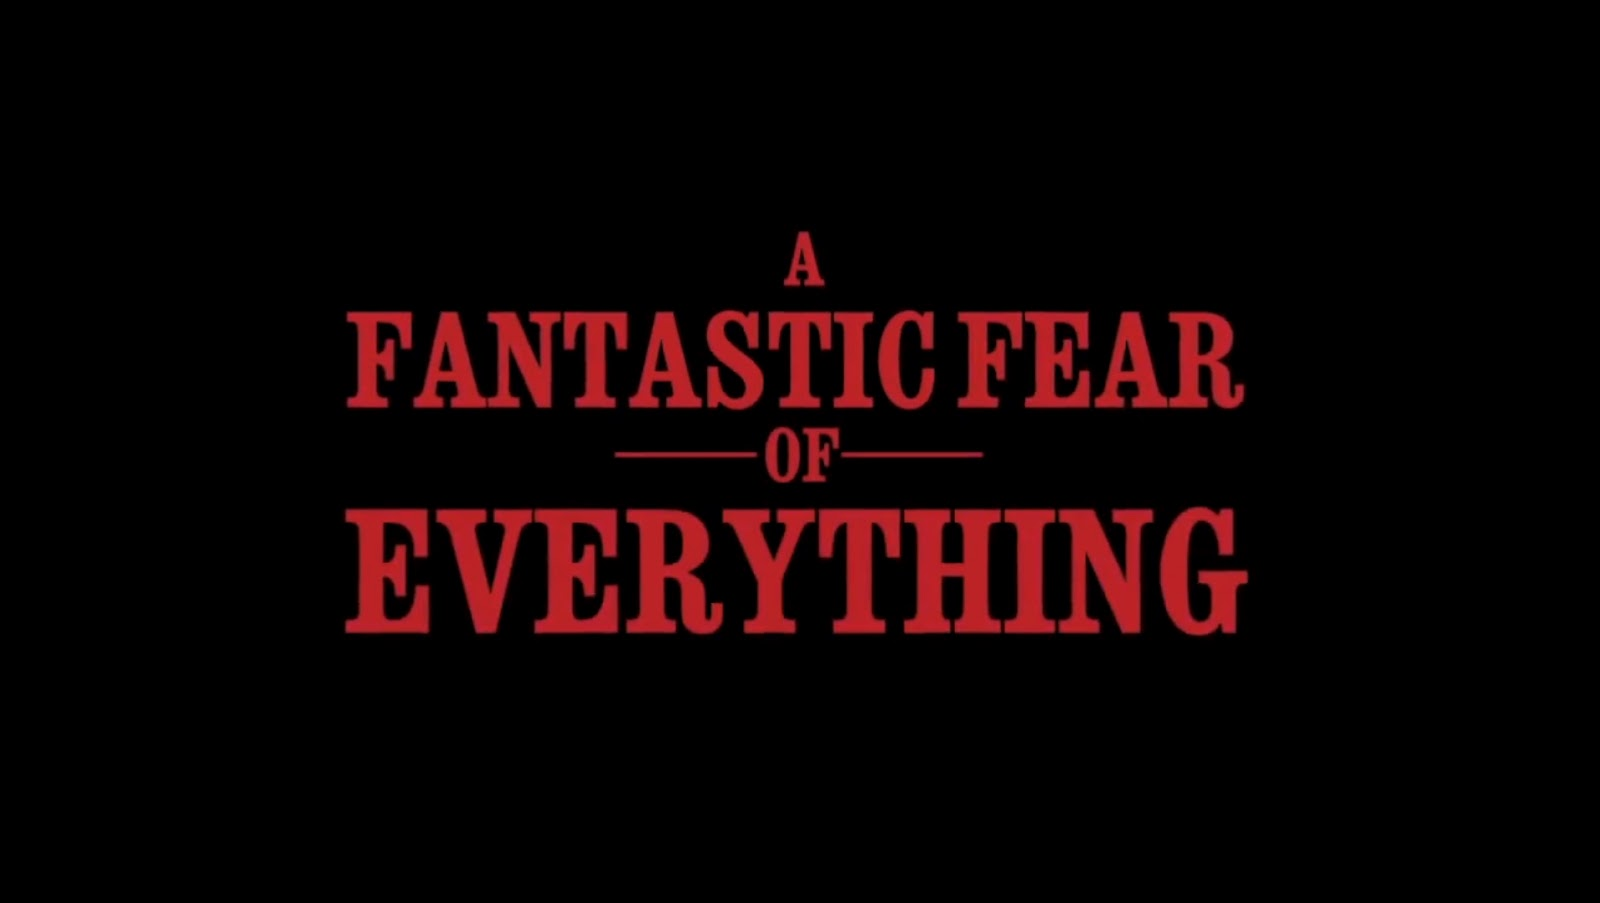 a fantastic fear of everything image Read the a fantastic fear of everything movie synopsis, view the movie trailer, get cast and crew information, see movie photos, and more on moviescom.